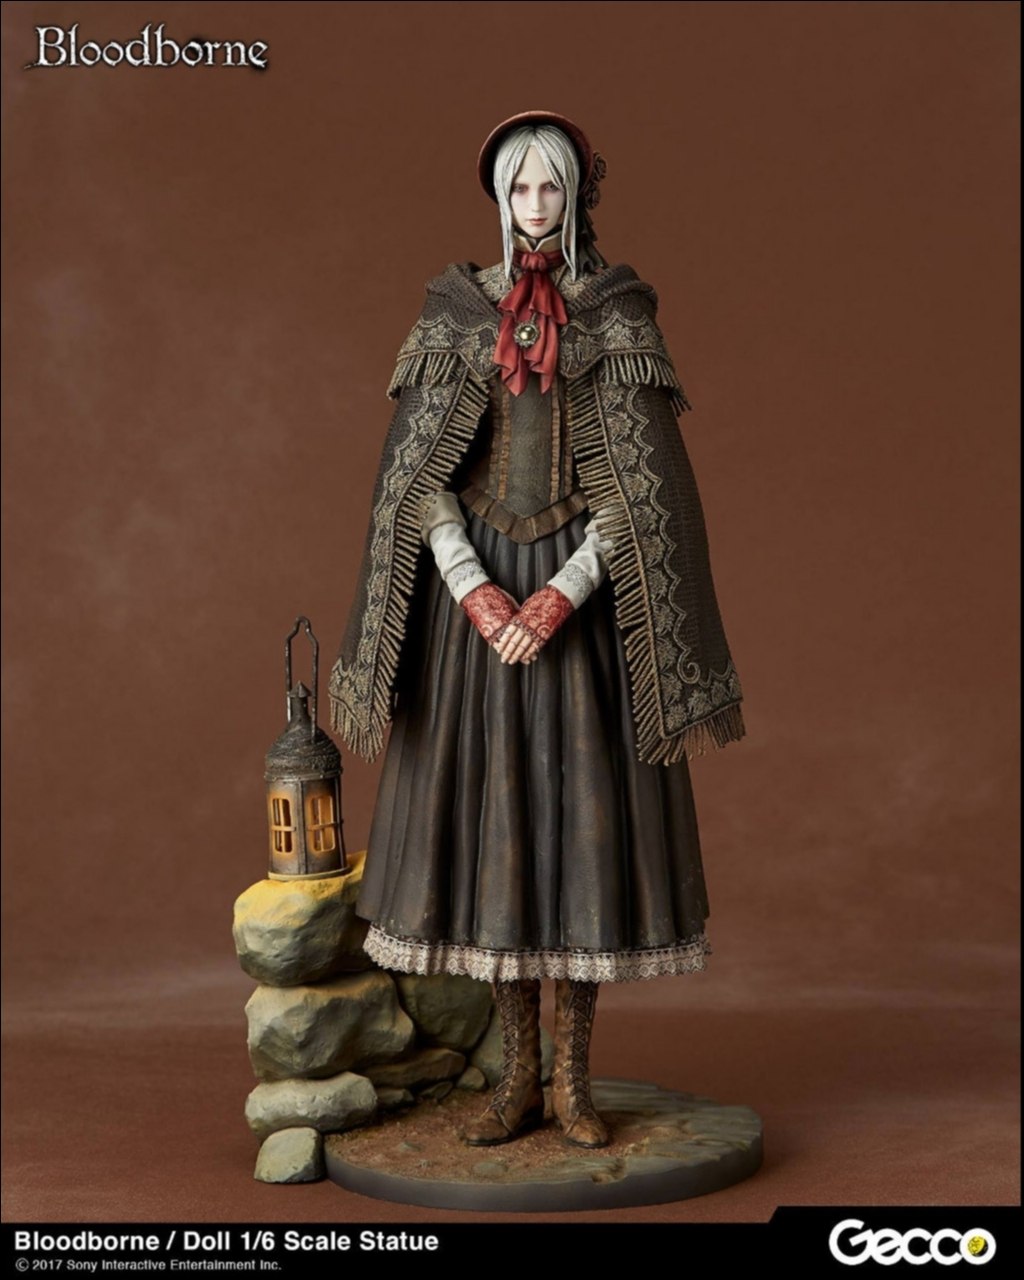 bloodborne-Doll-figure-statue-new-preorder-5-78-1499370759-87-1499371323.jpg